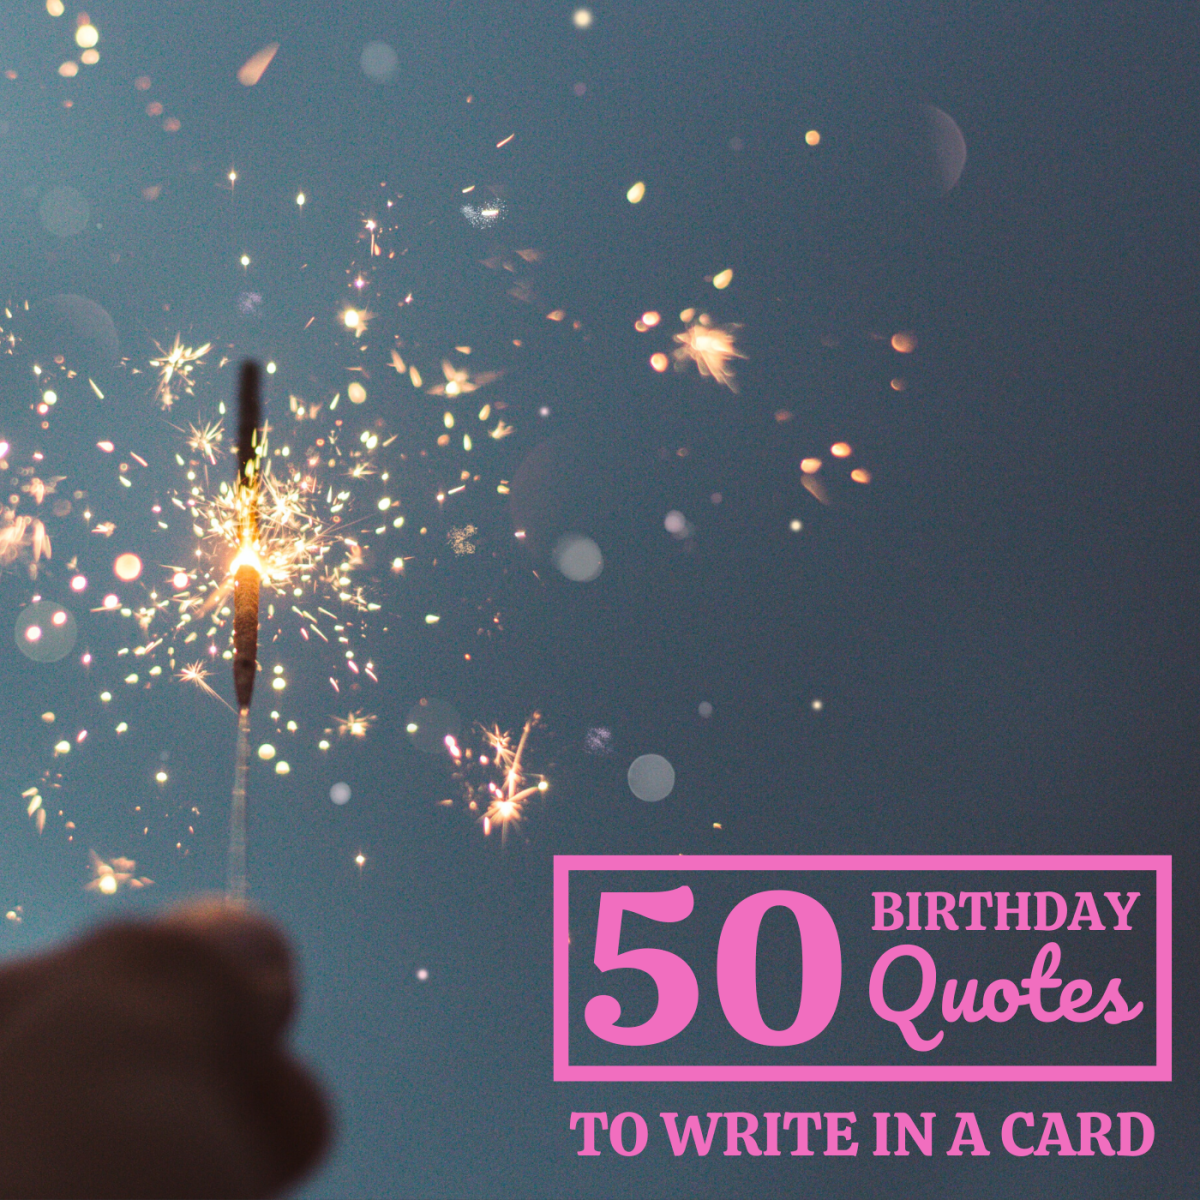 Inscribing a relevant quote is a great way to personalize a birthday card. The 50 listed here range from funny to silly to serious to sincere.